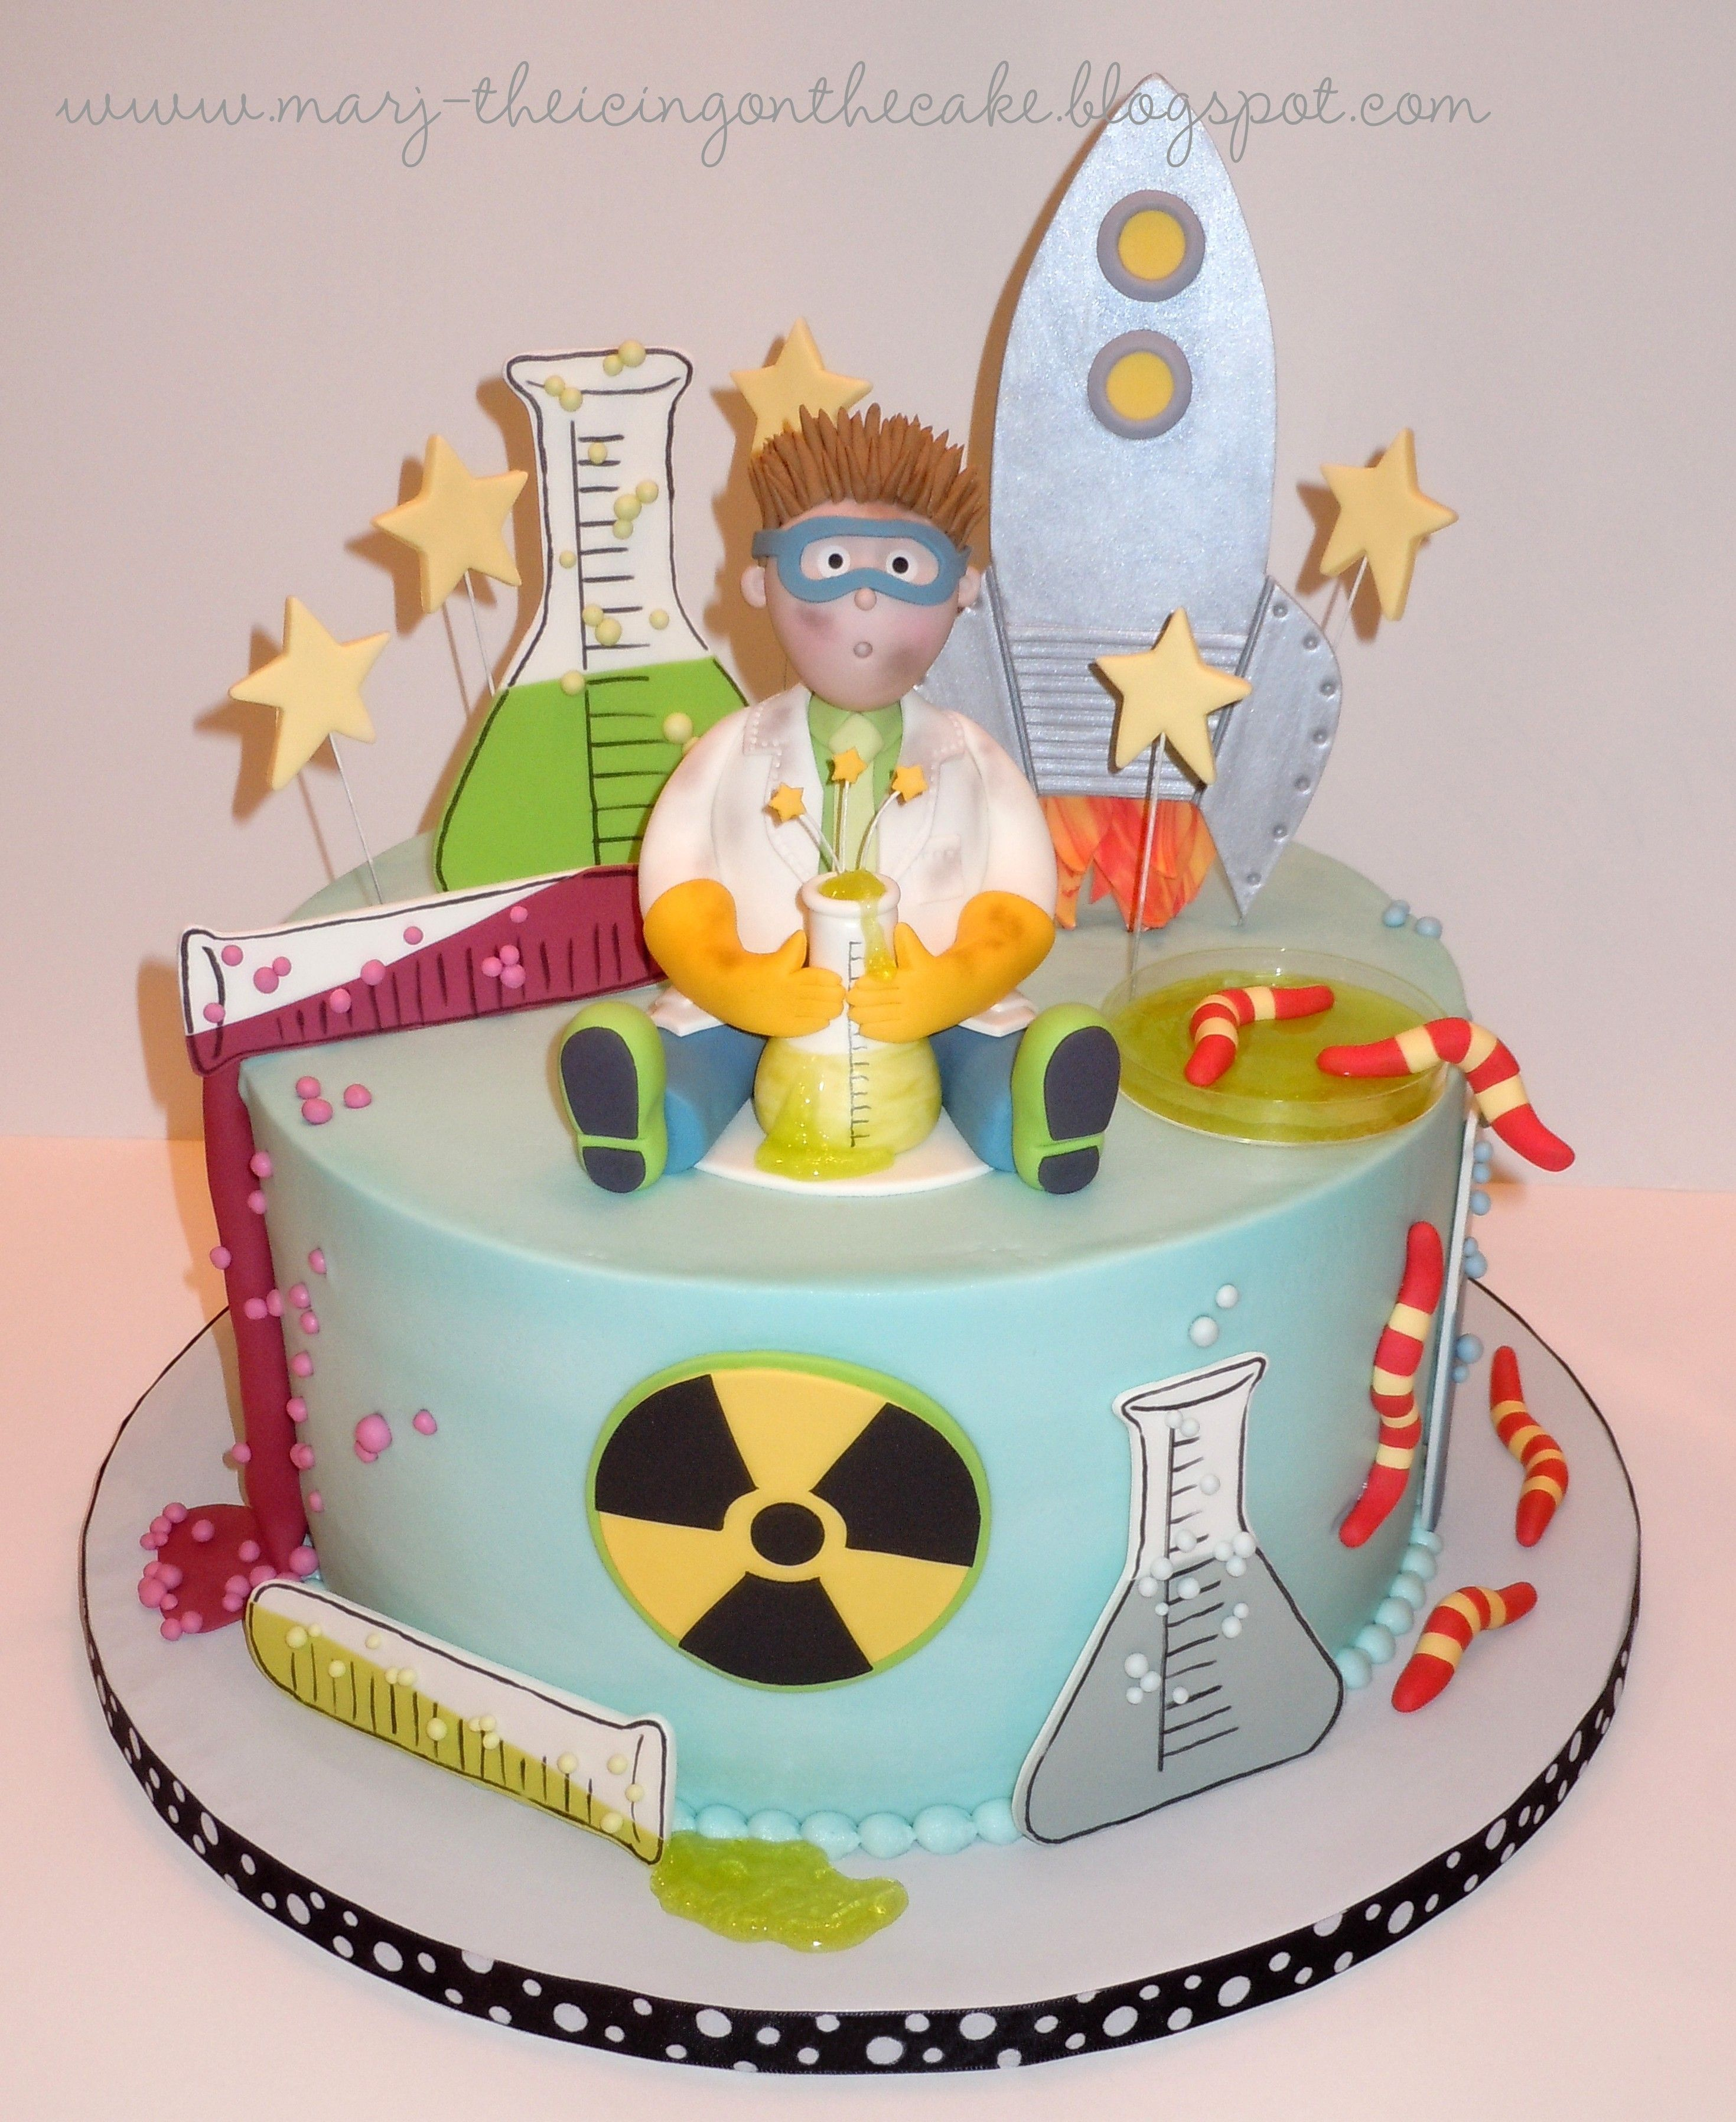 Mad Scientist With Images Science Cake Birthday Cake Kids